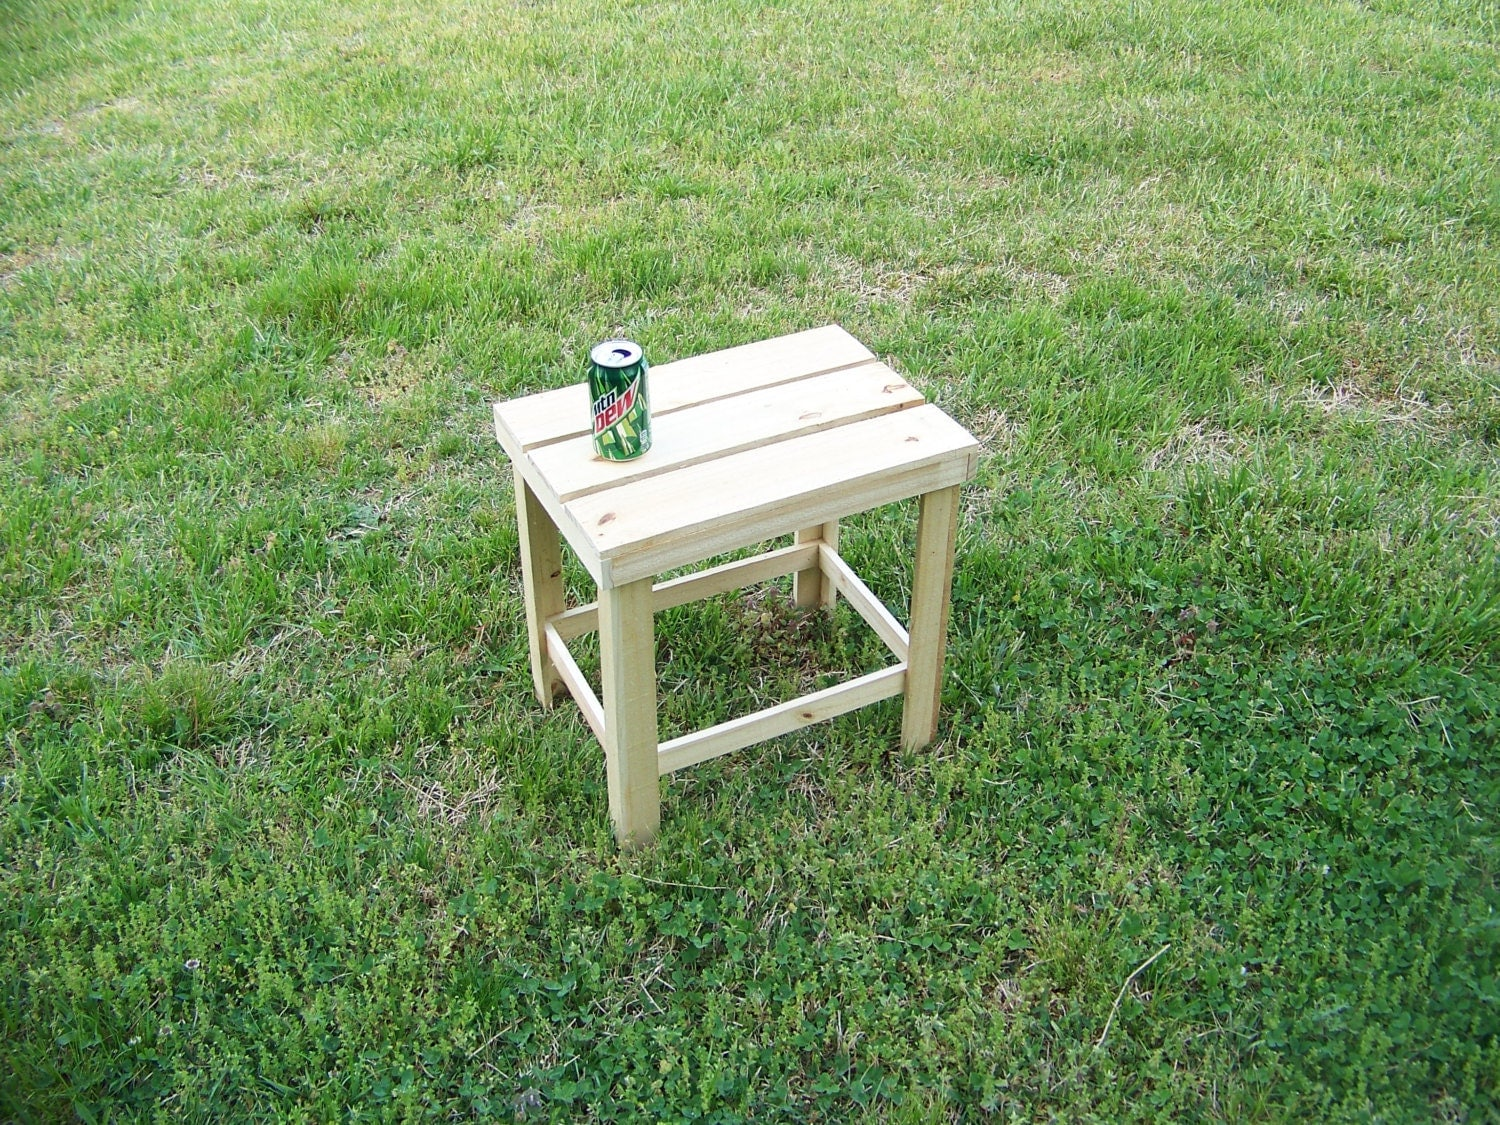 Table Pressure Treated Outdoor Table Deck Rustic Cabin Picnic Table Side Table Grilling